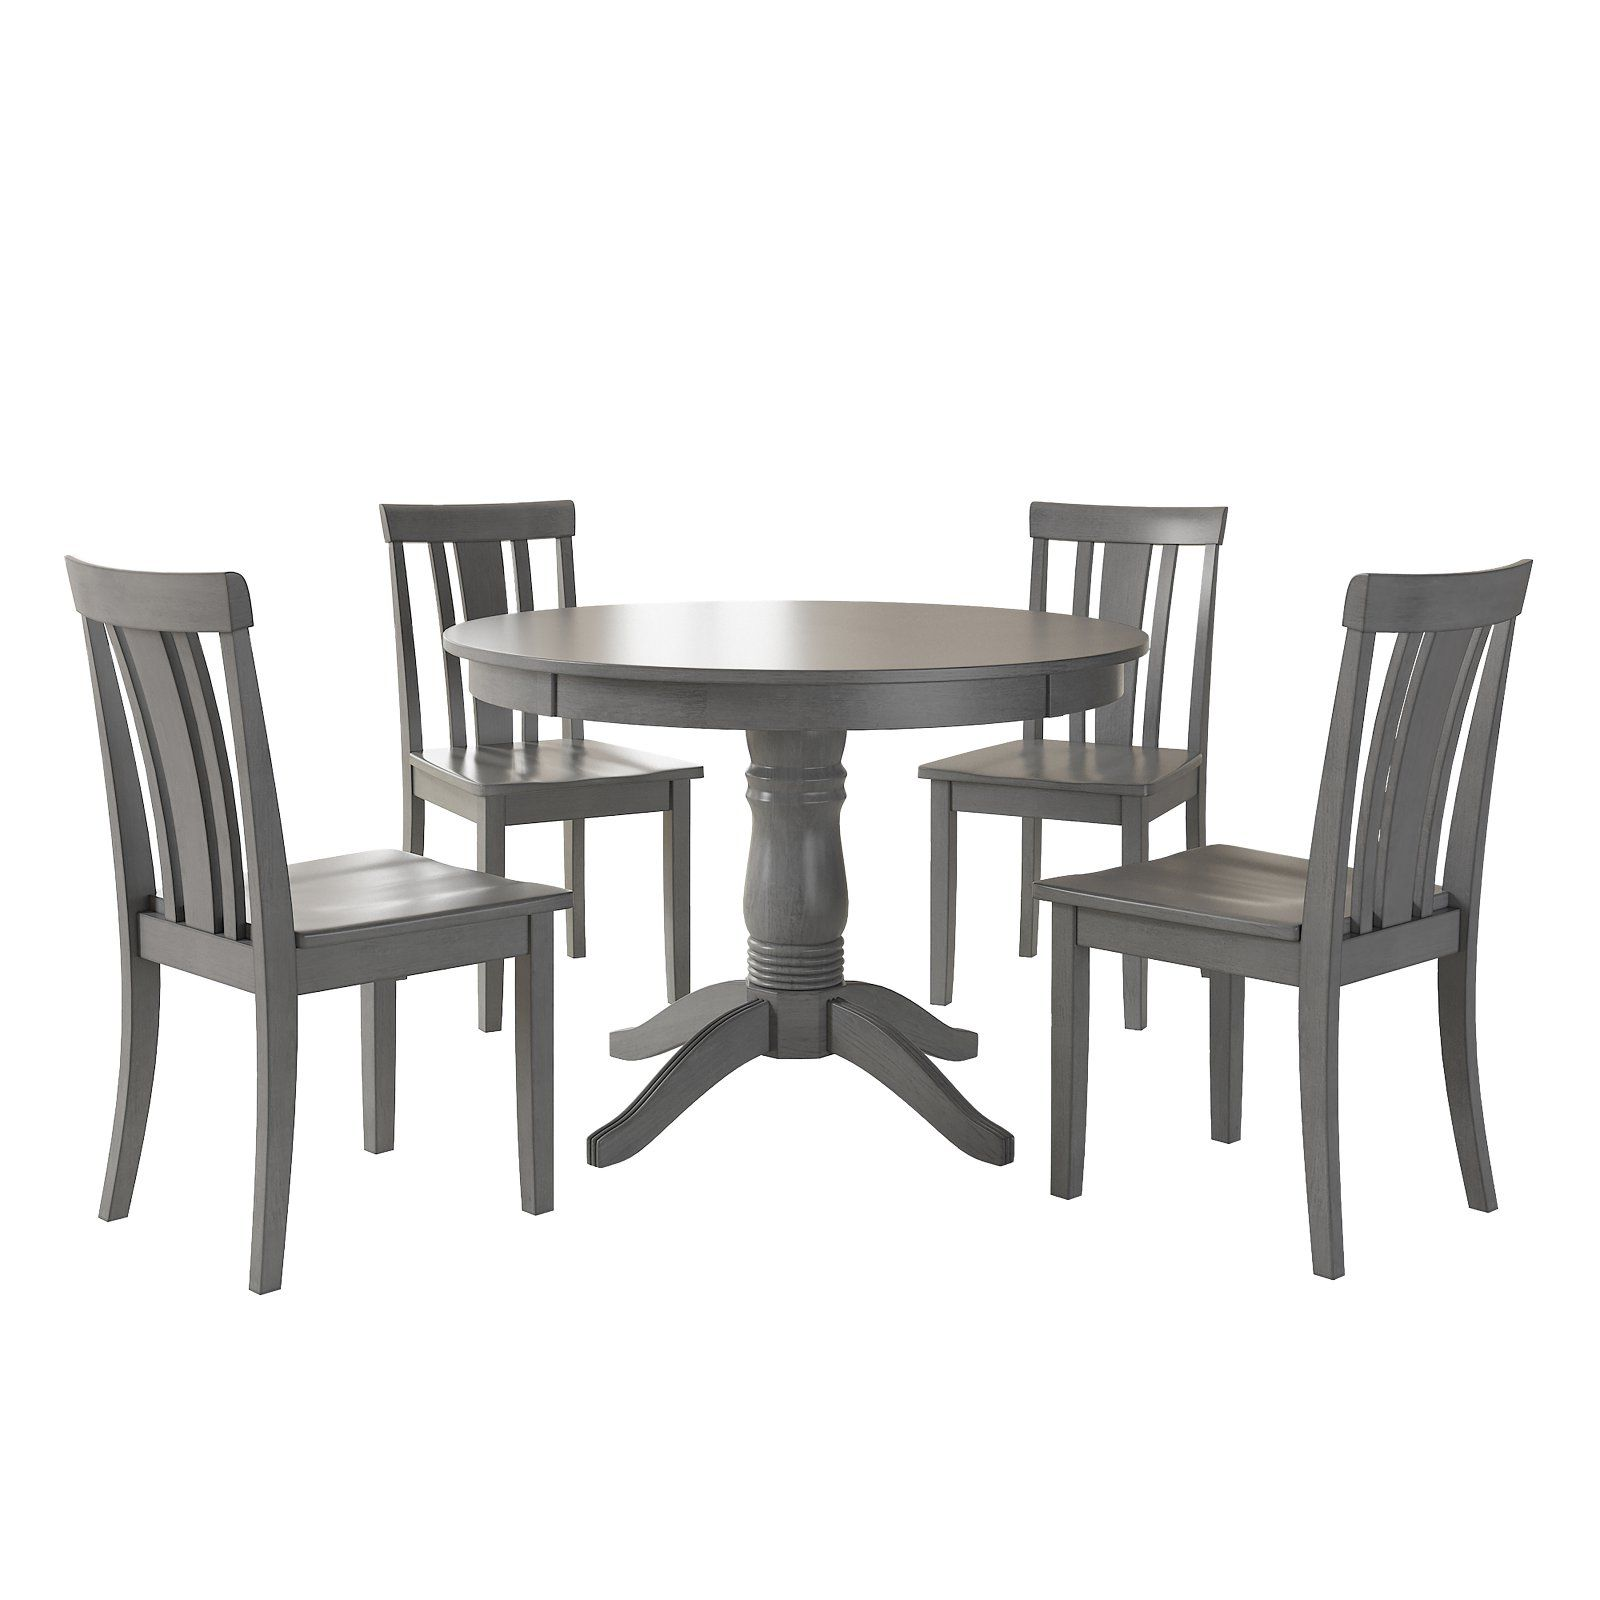 Weston Home Lexington 5 Piece Round Dining Table Set With Slat